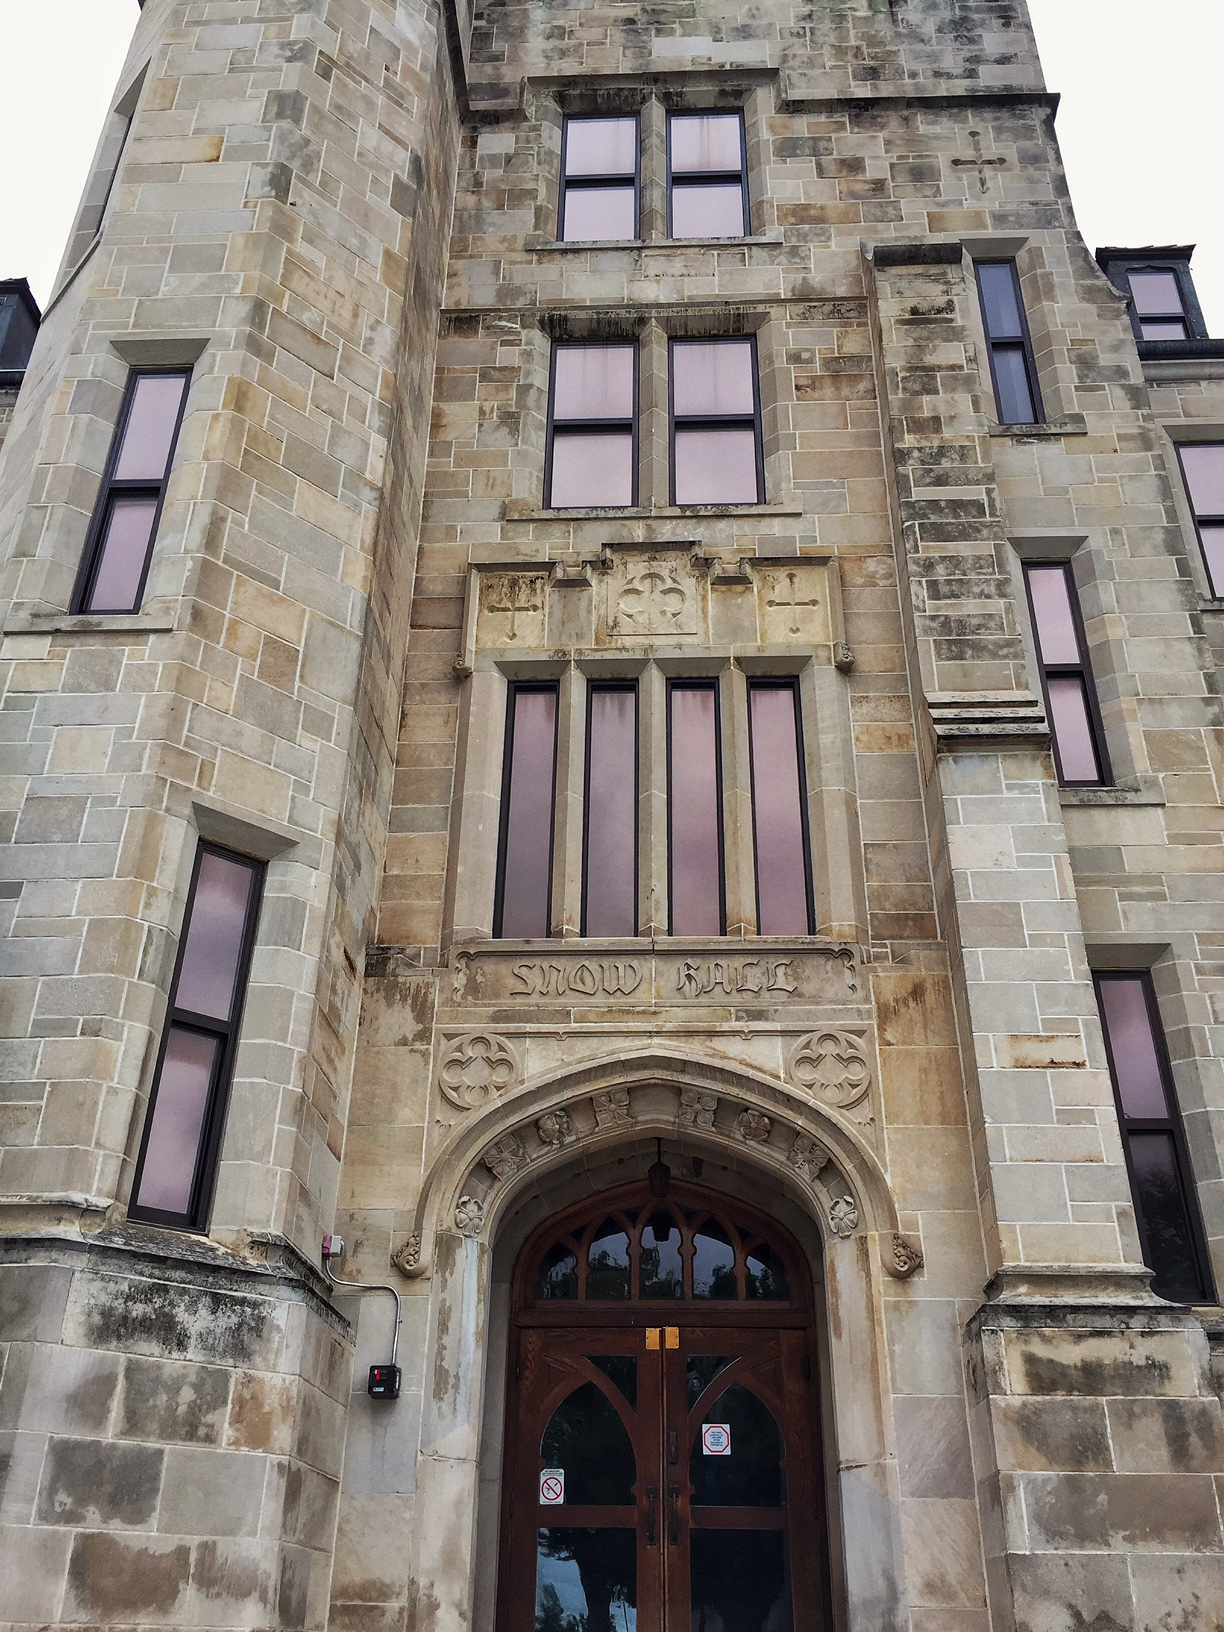 Named after former KU Chancellor Francis Snow, Snow Hall is an impressive example of modified Collegiate Gothic style architecture.  (Photo by J. Schafer)